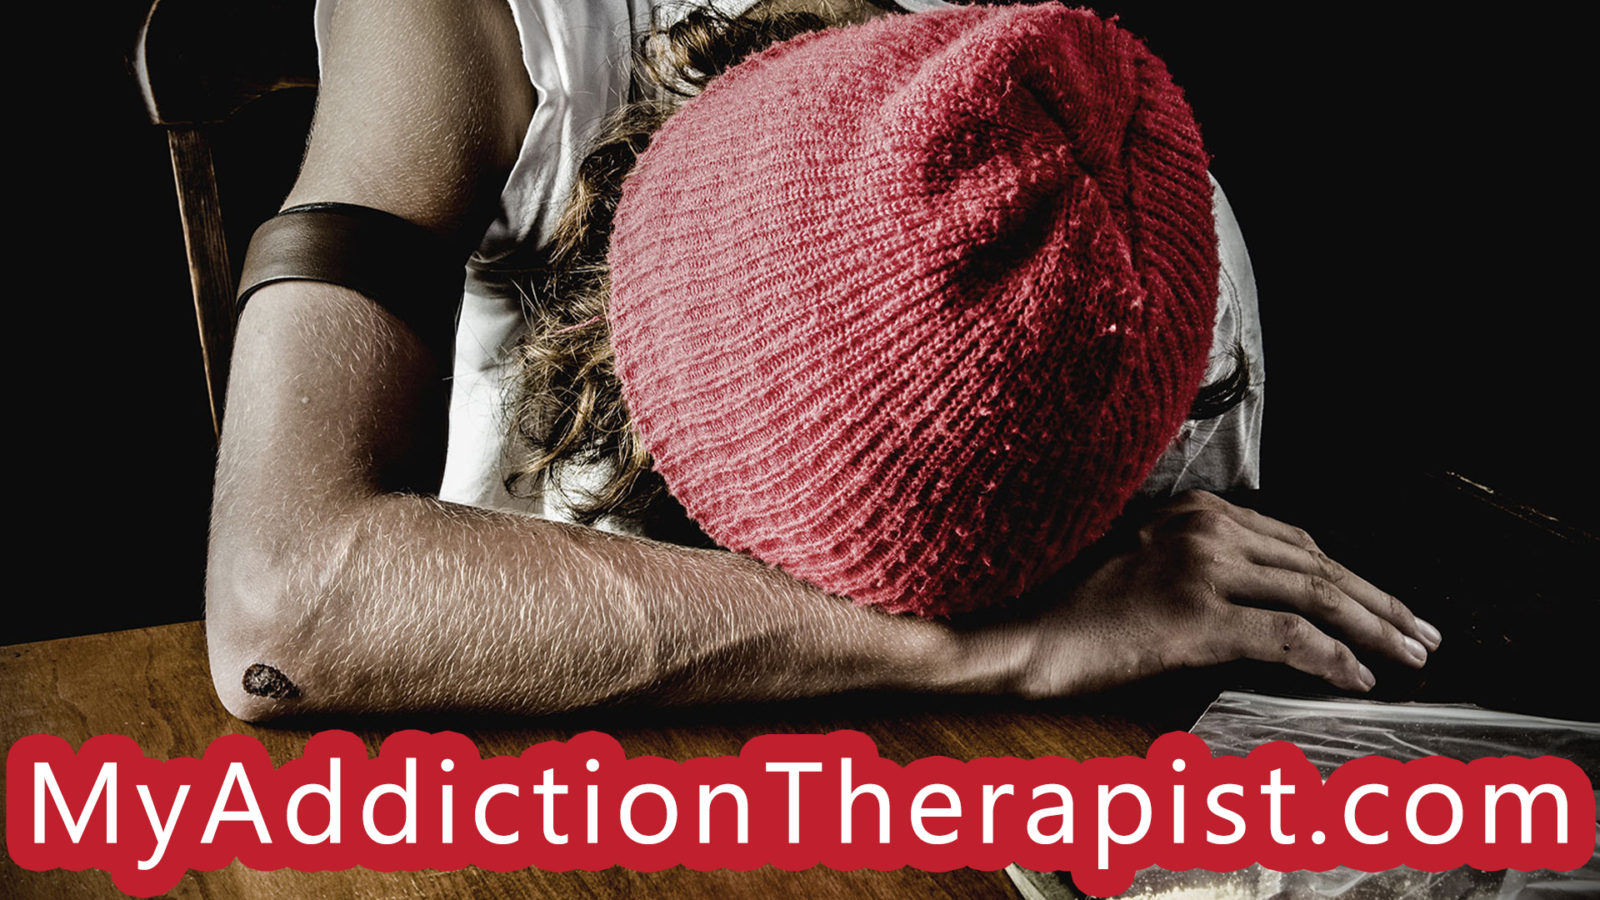 heroin addiction counseling NY